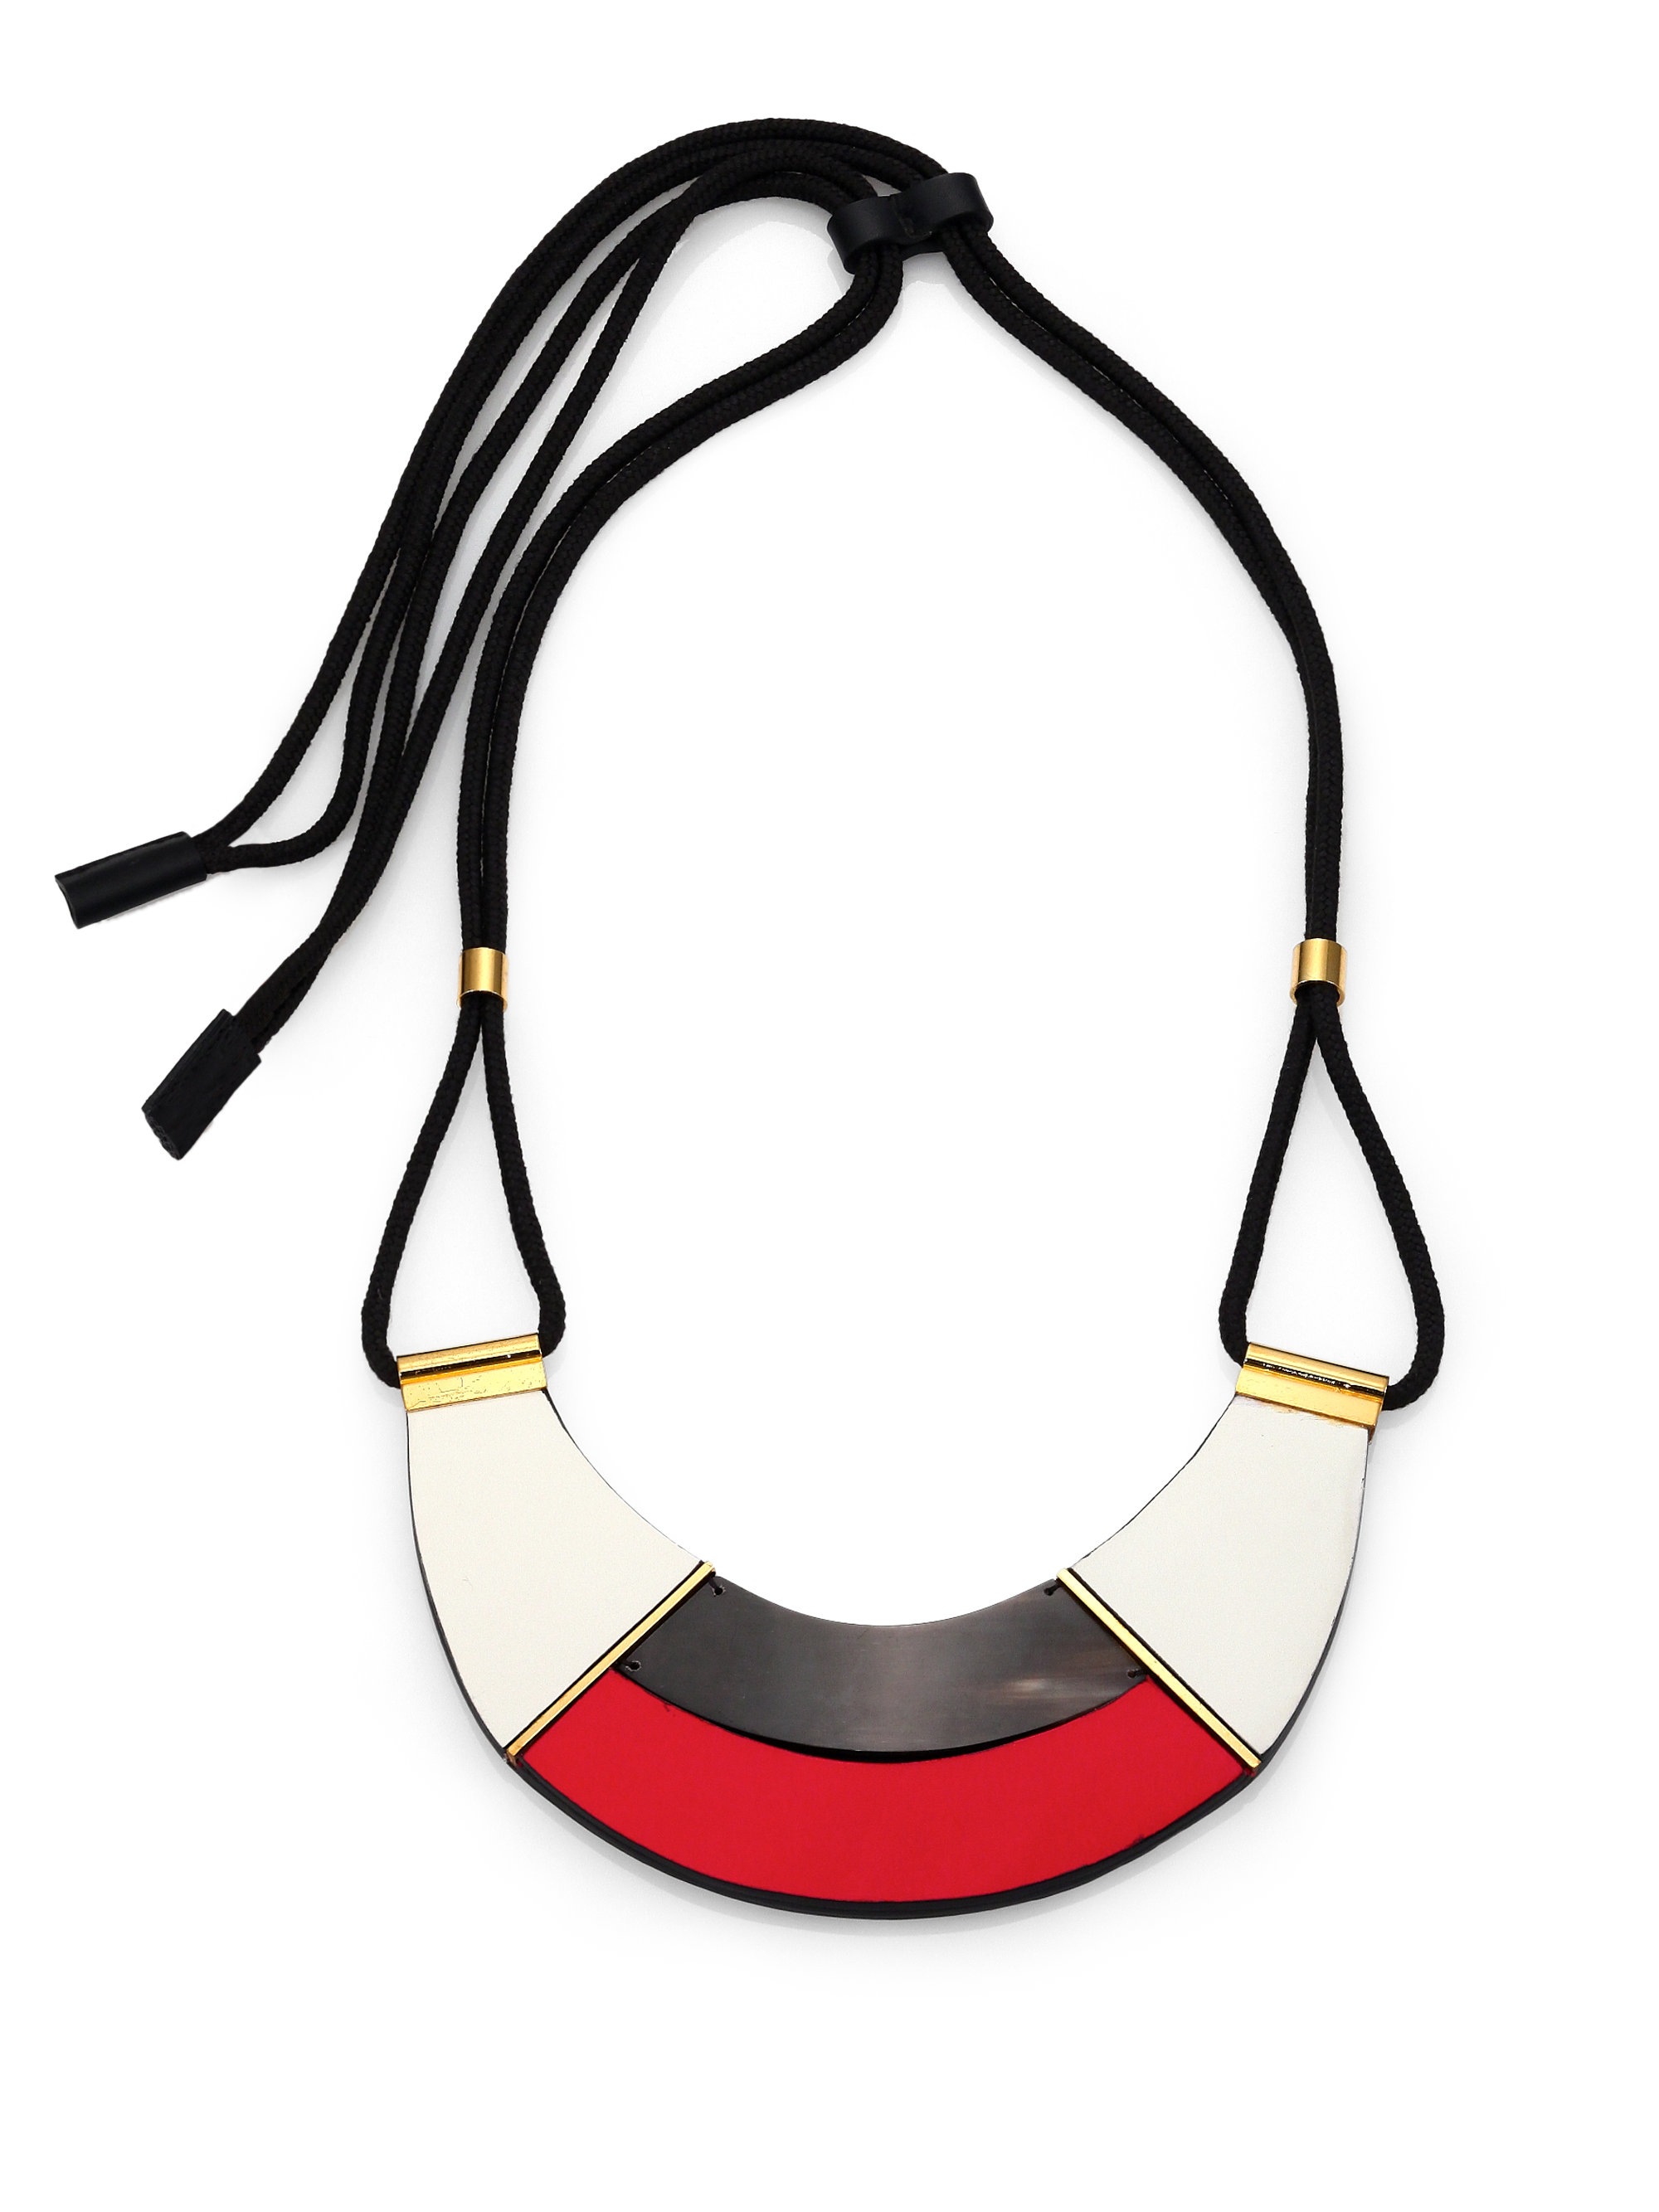 946932a09 Marni Colorblock Leather & Horn Bib Necklace in Red - Lyst